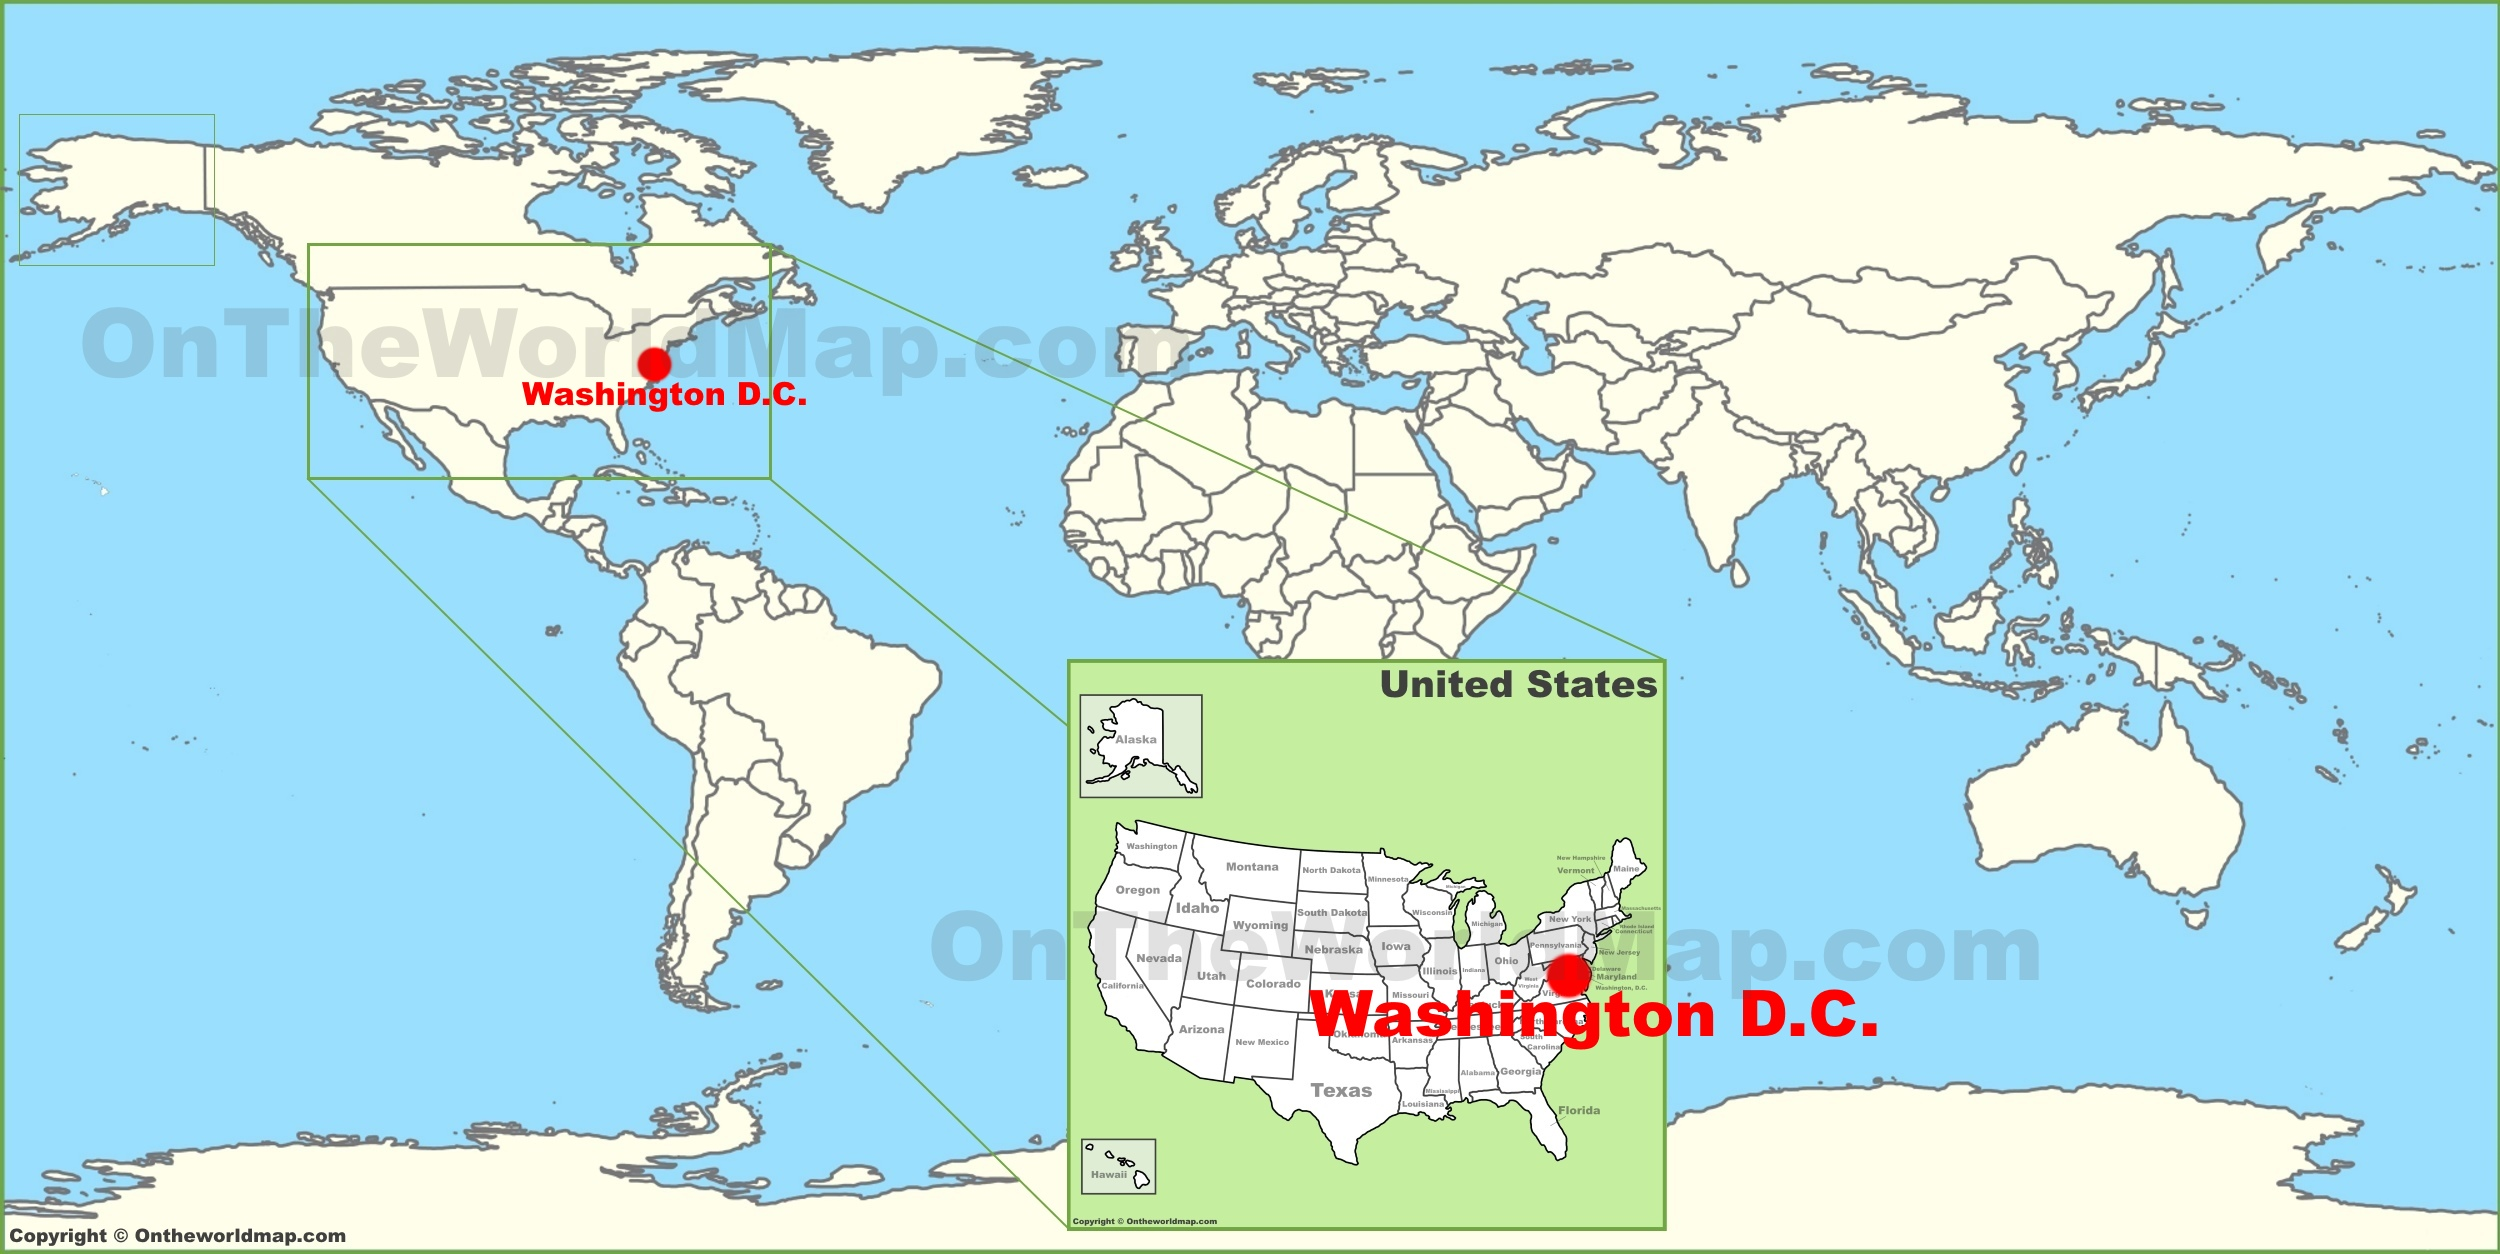 Washington D.C. on the World Map